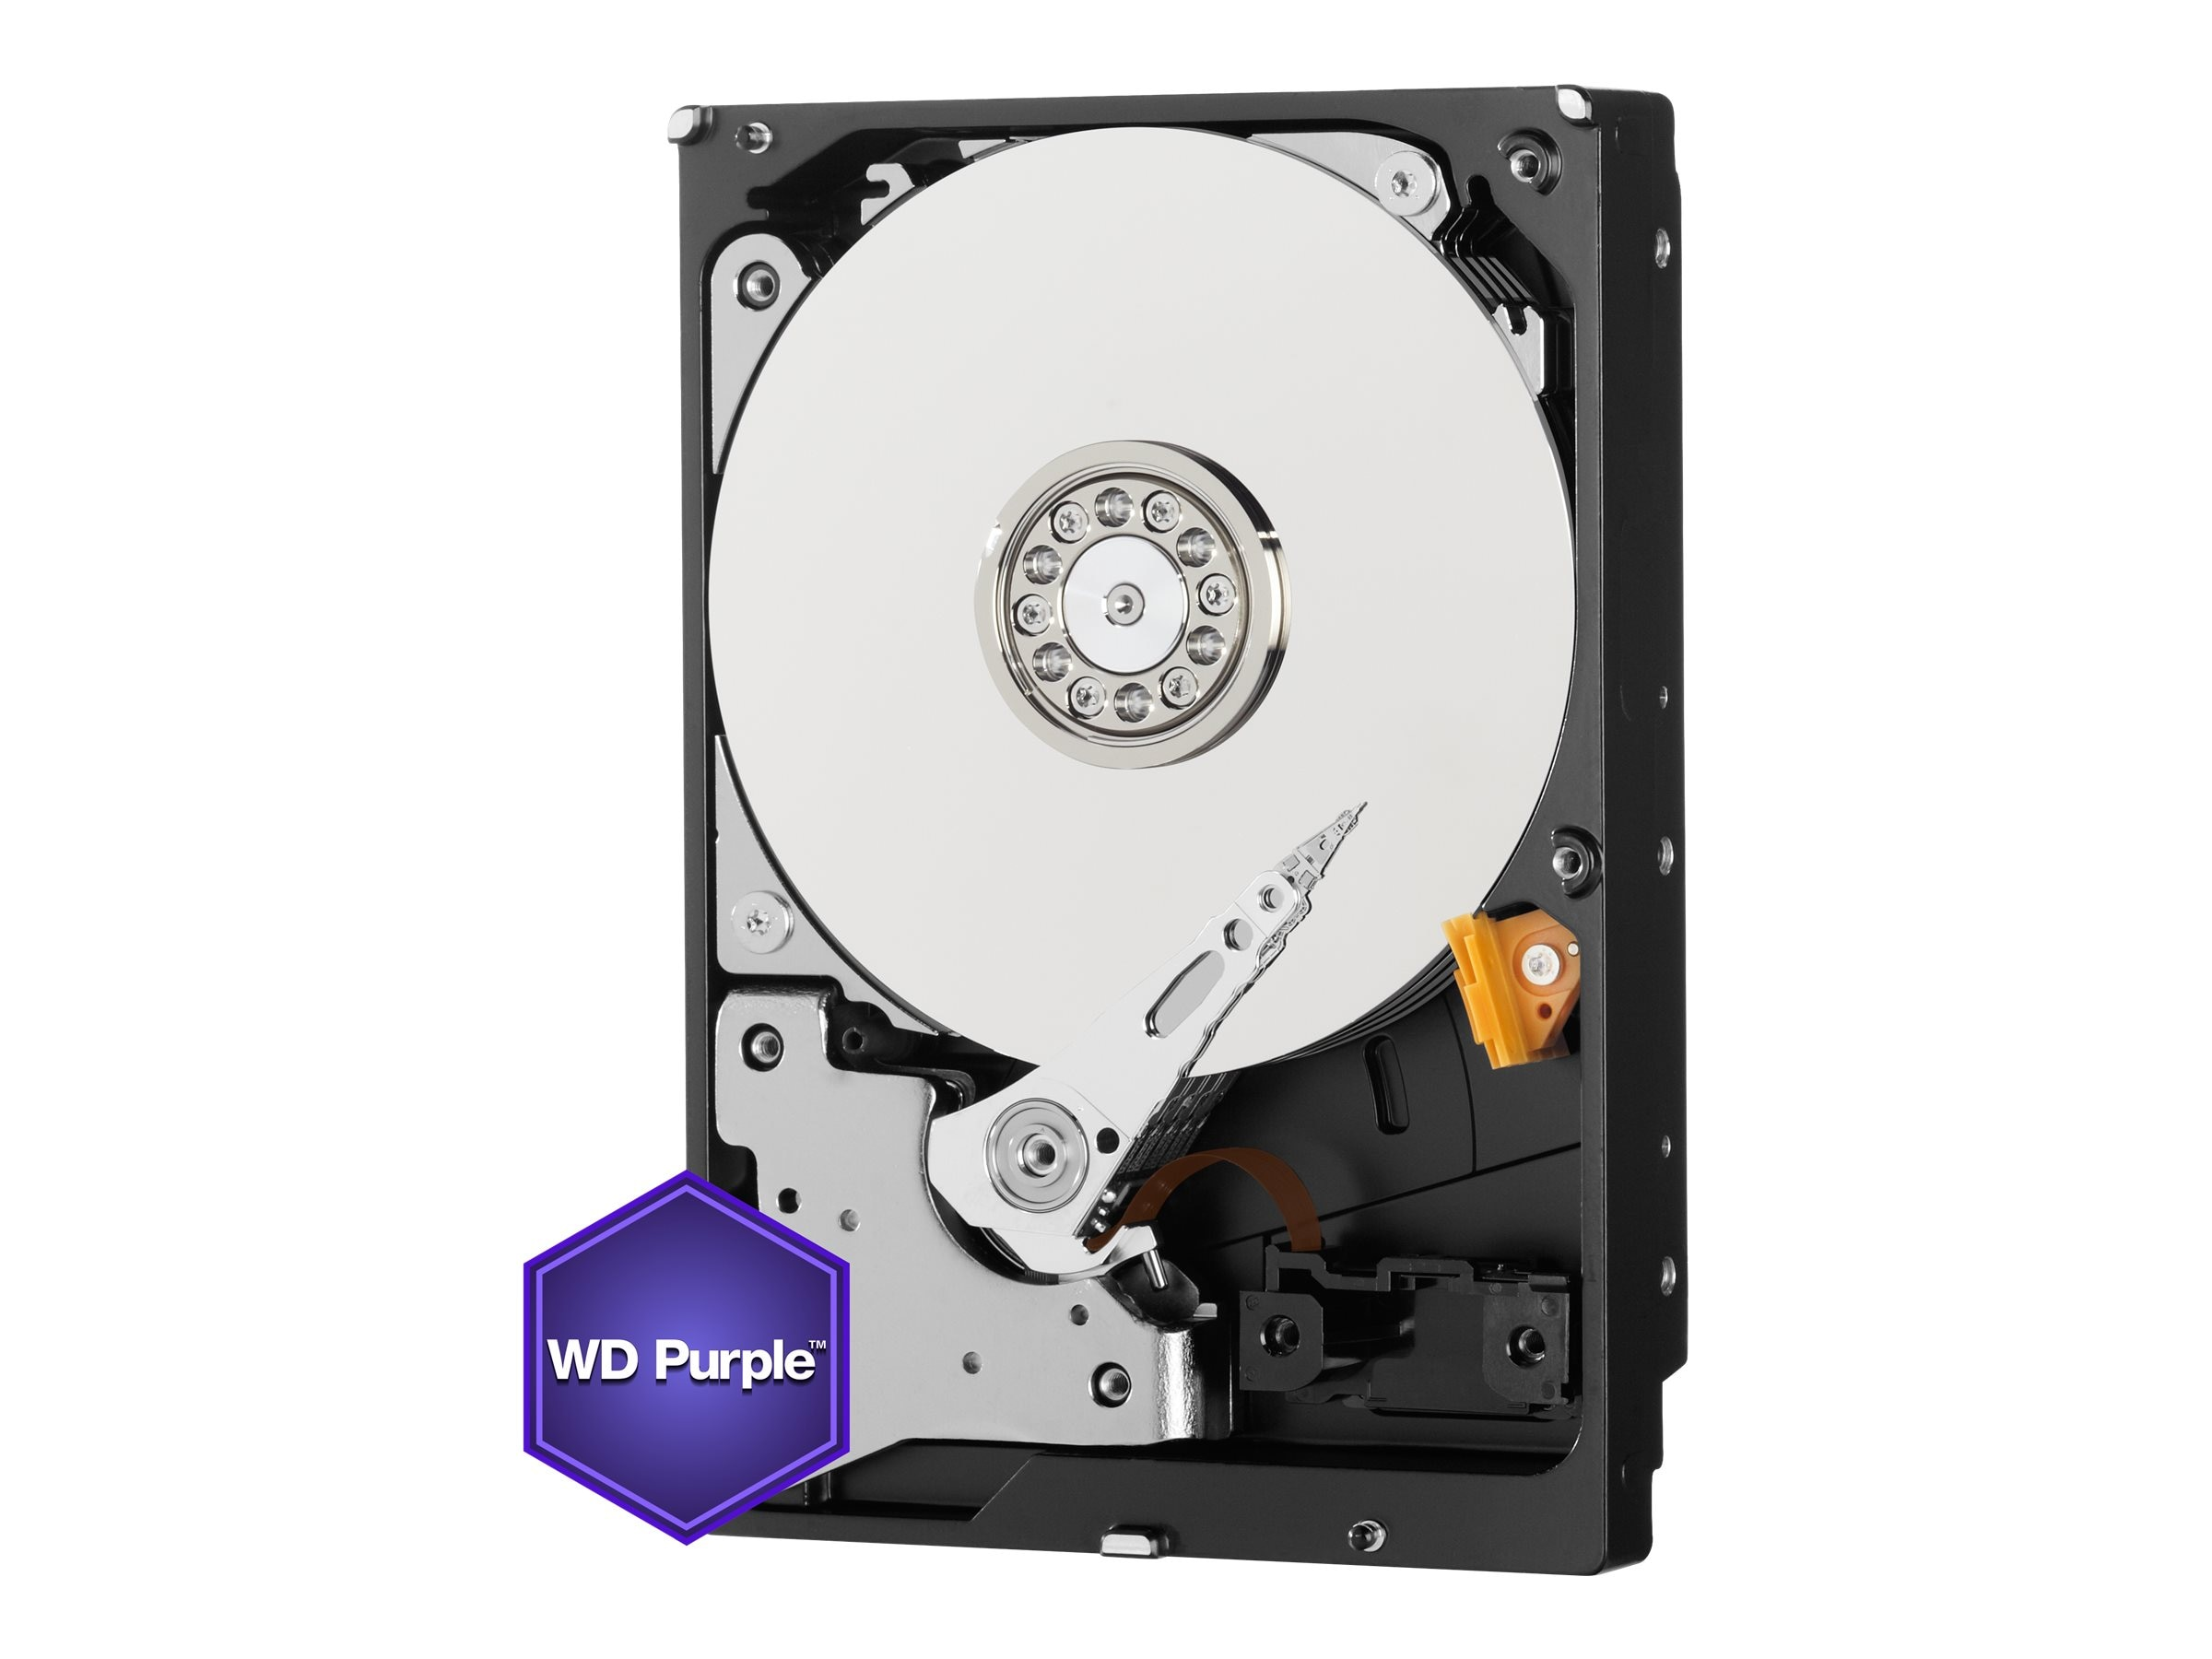 WD 3TB WD Purple SATA 6Gb s 3.5 Internal Surveillance Hard Drive, WD30PURX, 16903765, Hard Drives - Internal